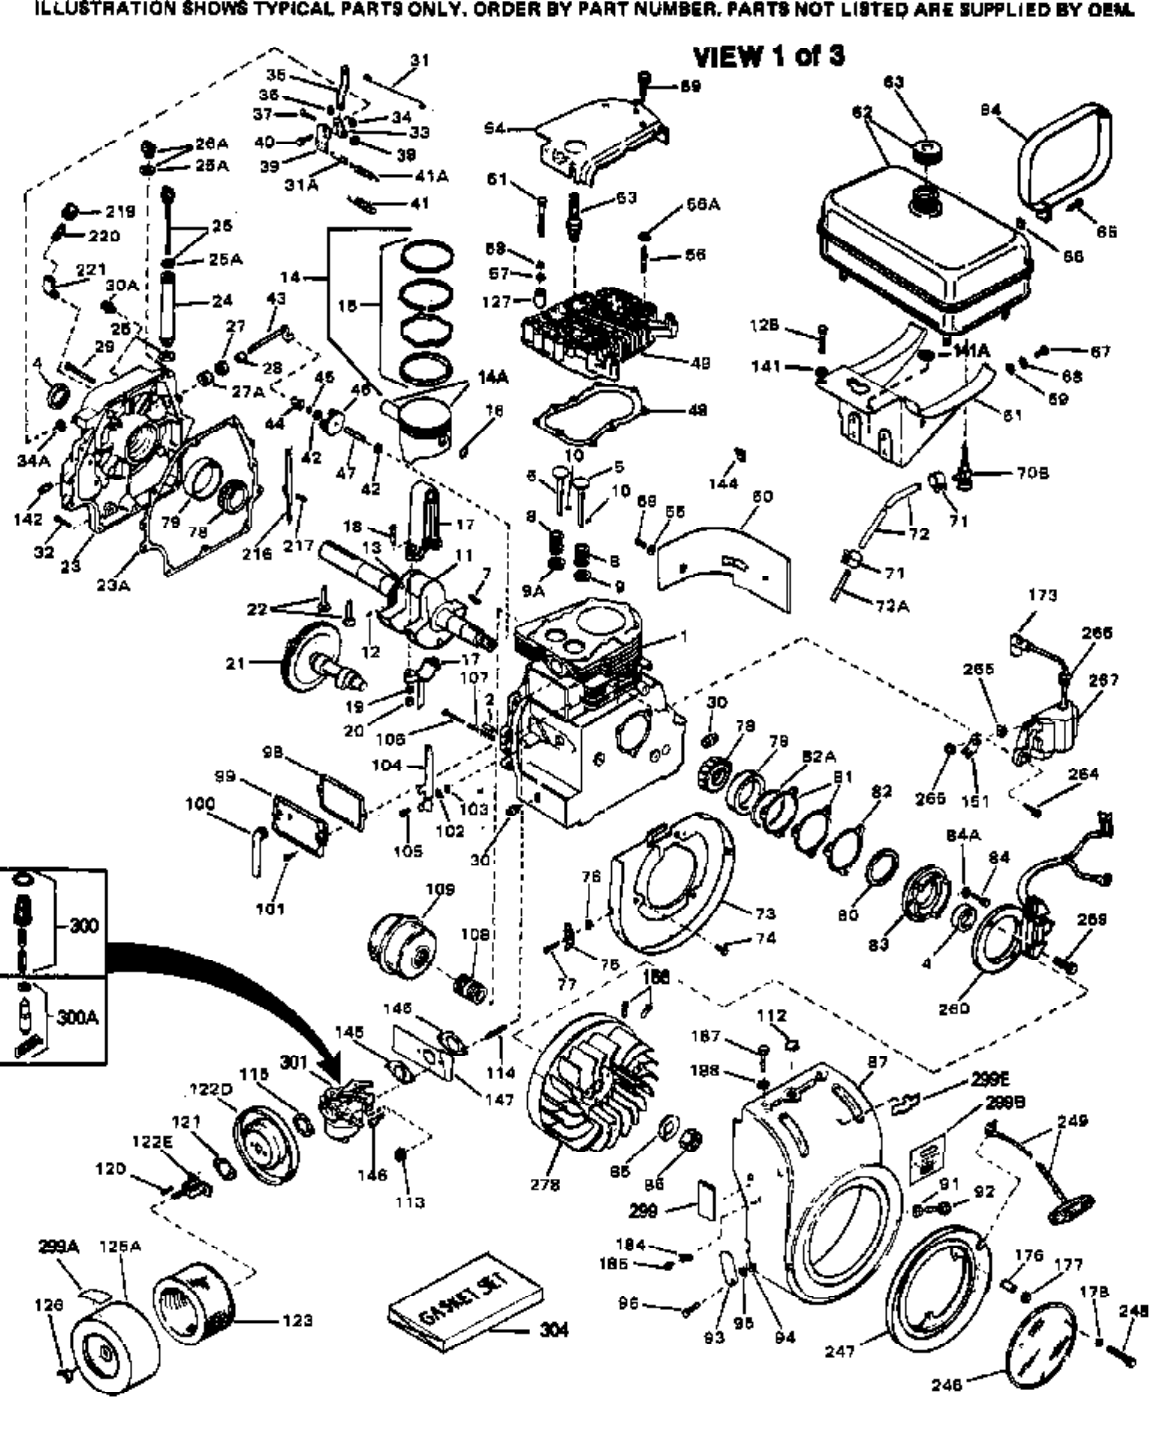 Tecumseh Recoil Starter Assembly Diagram